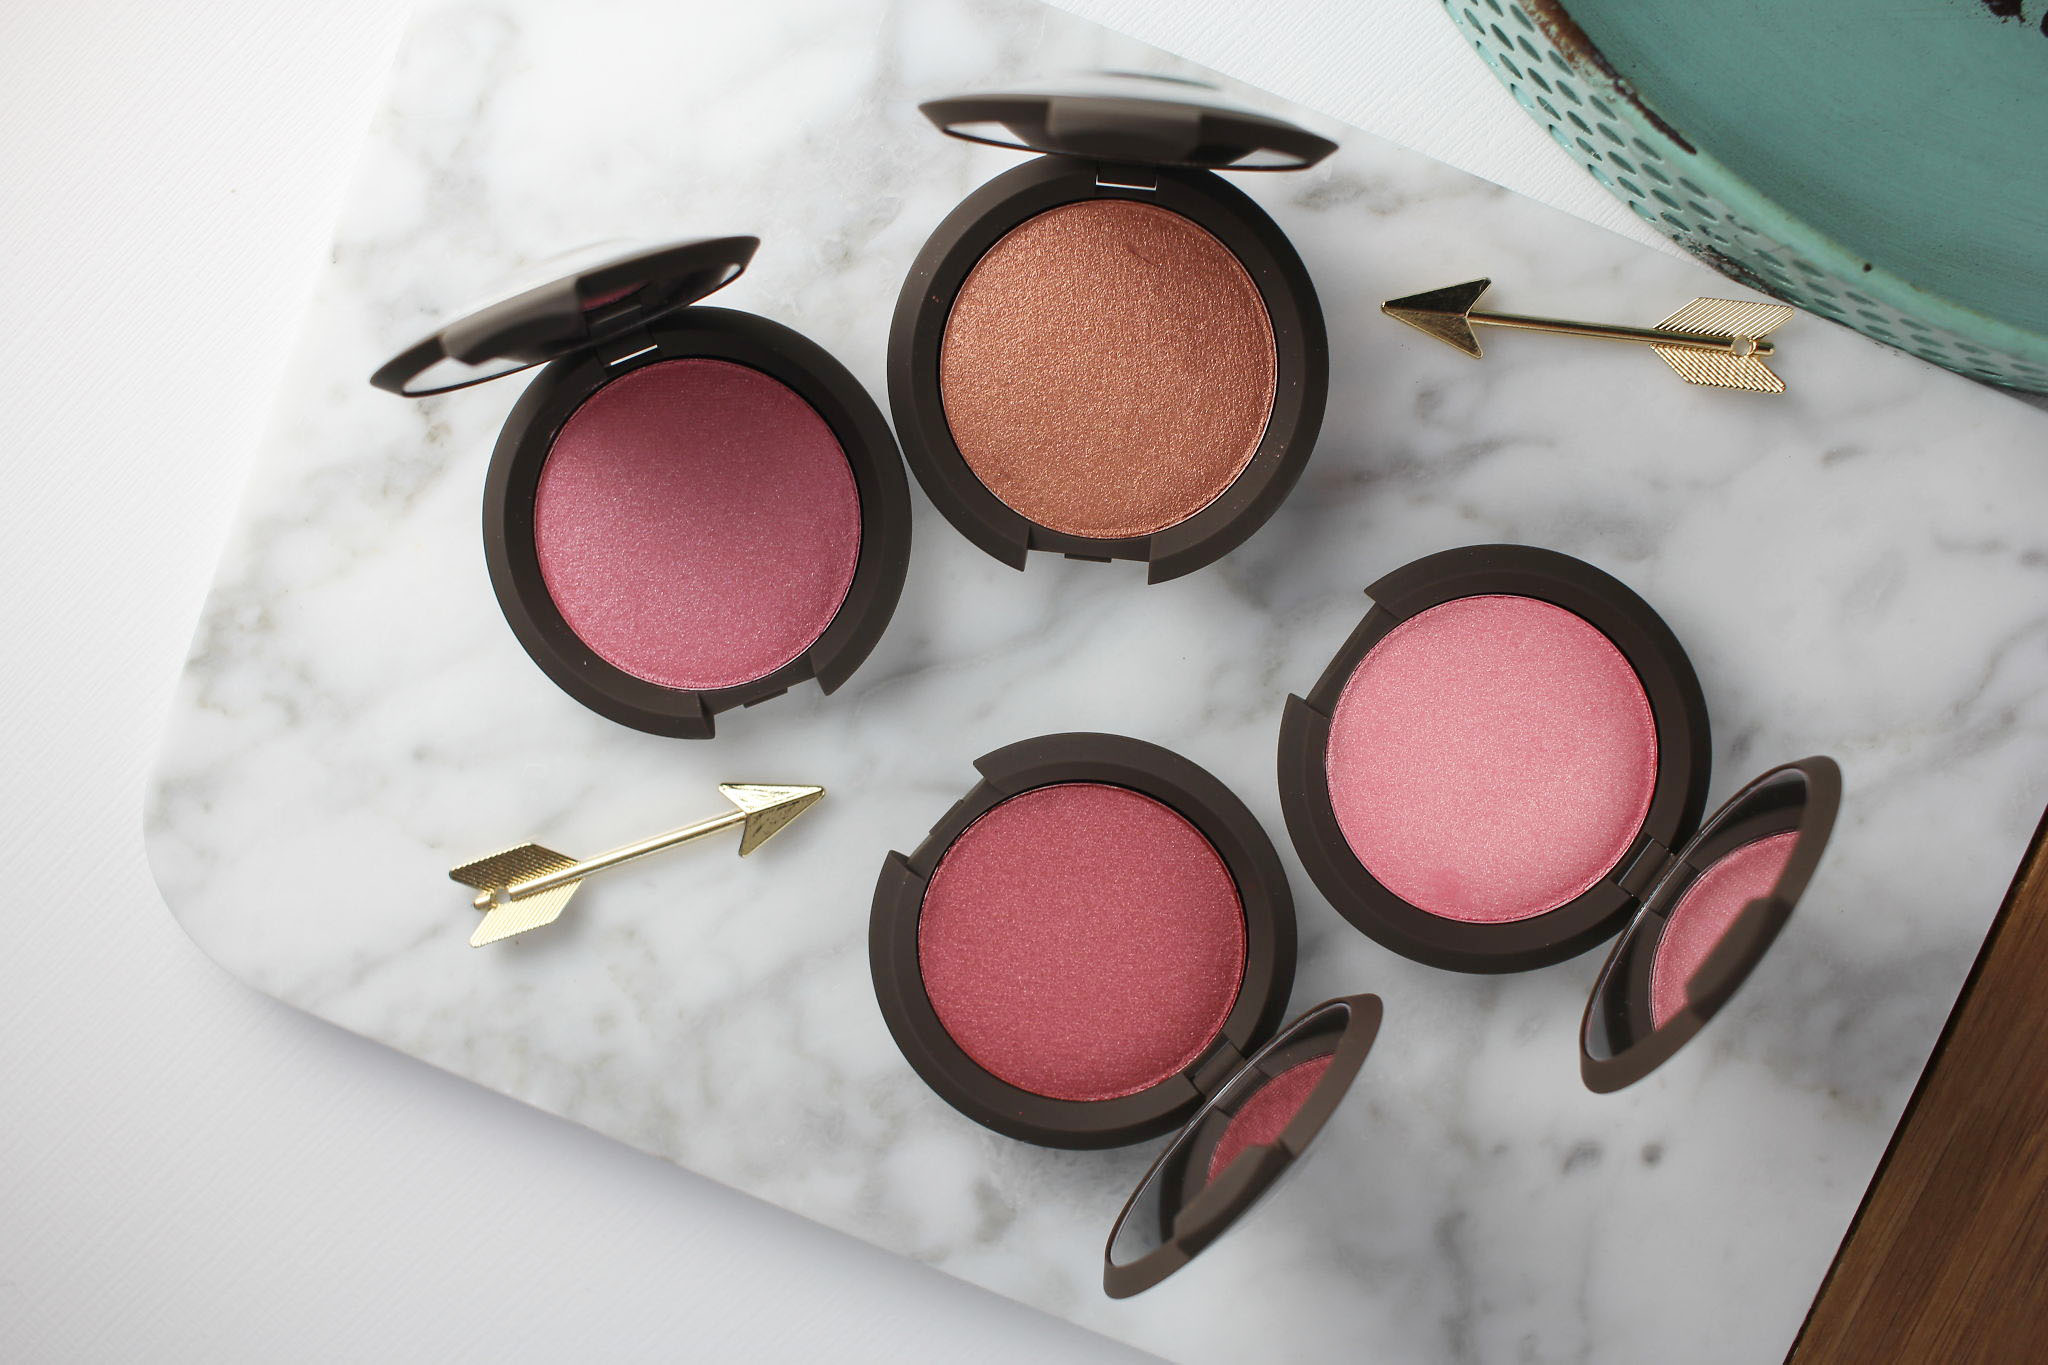 Becca Skin Perfector Luminous Blushes, Camellia, Foxglove, Dahlia, Blushed Copper